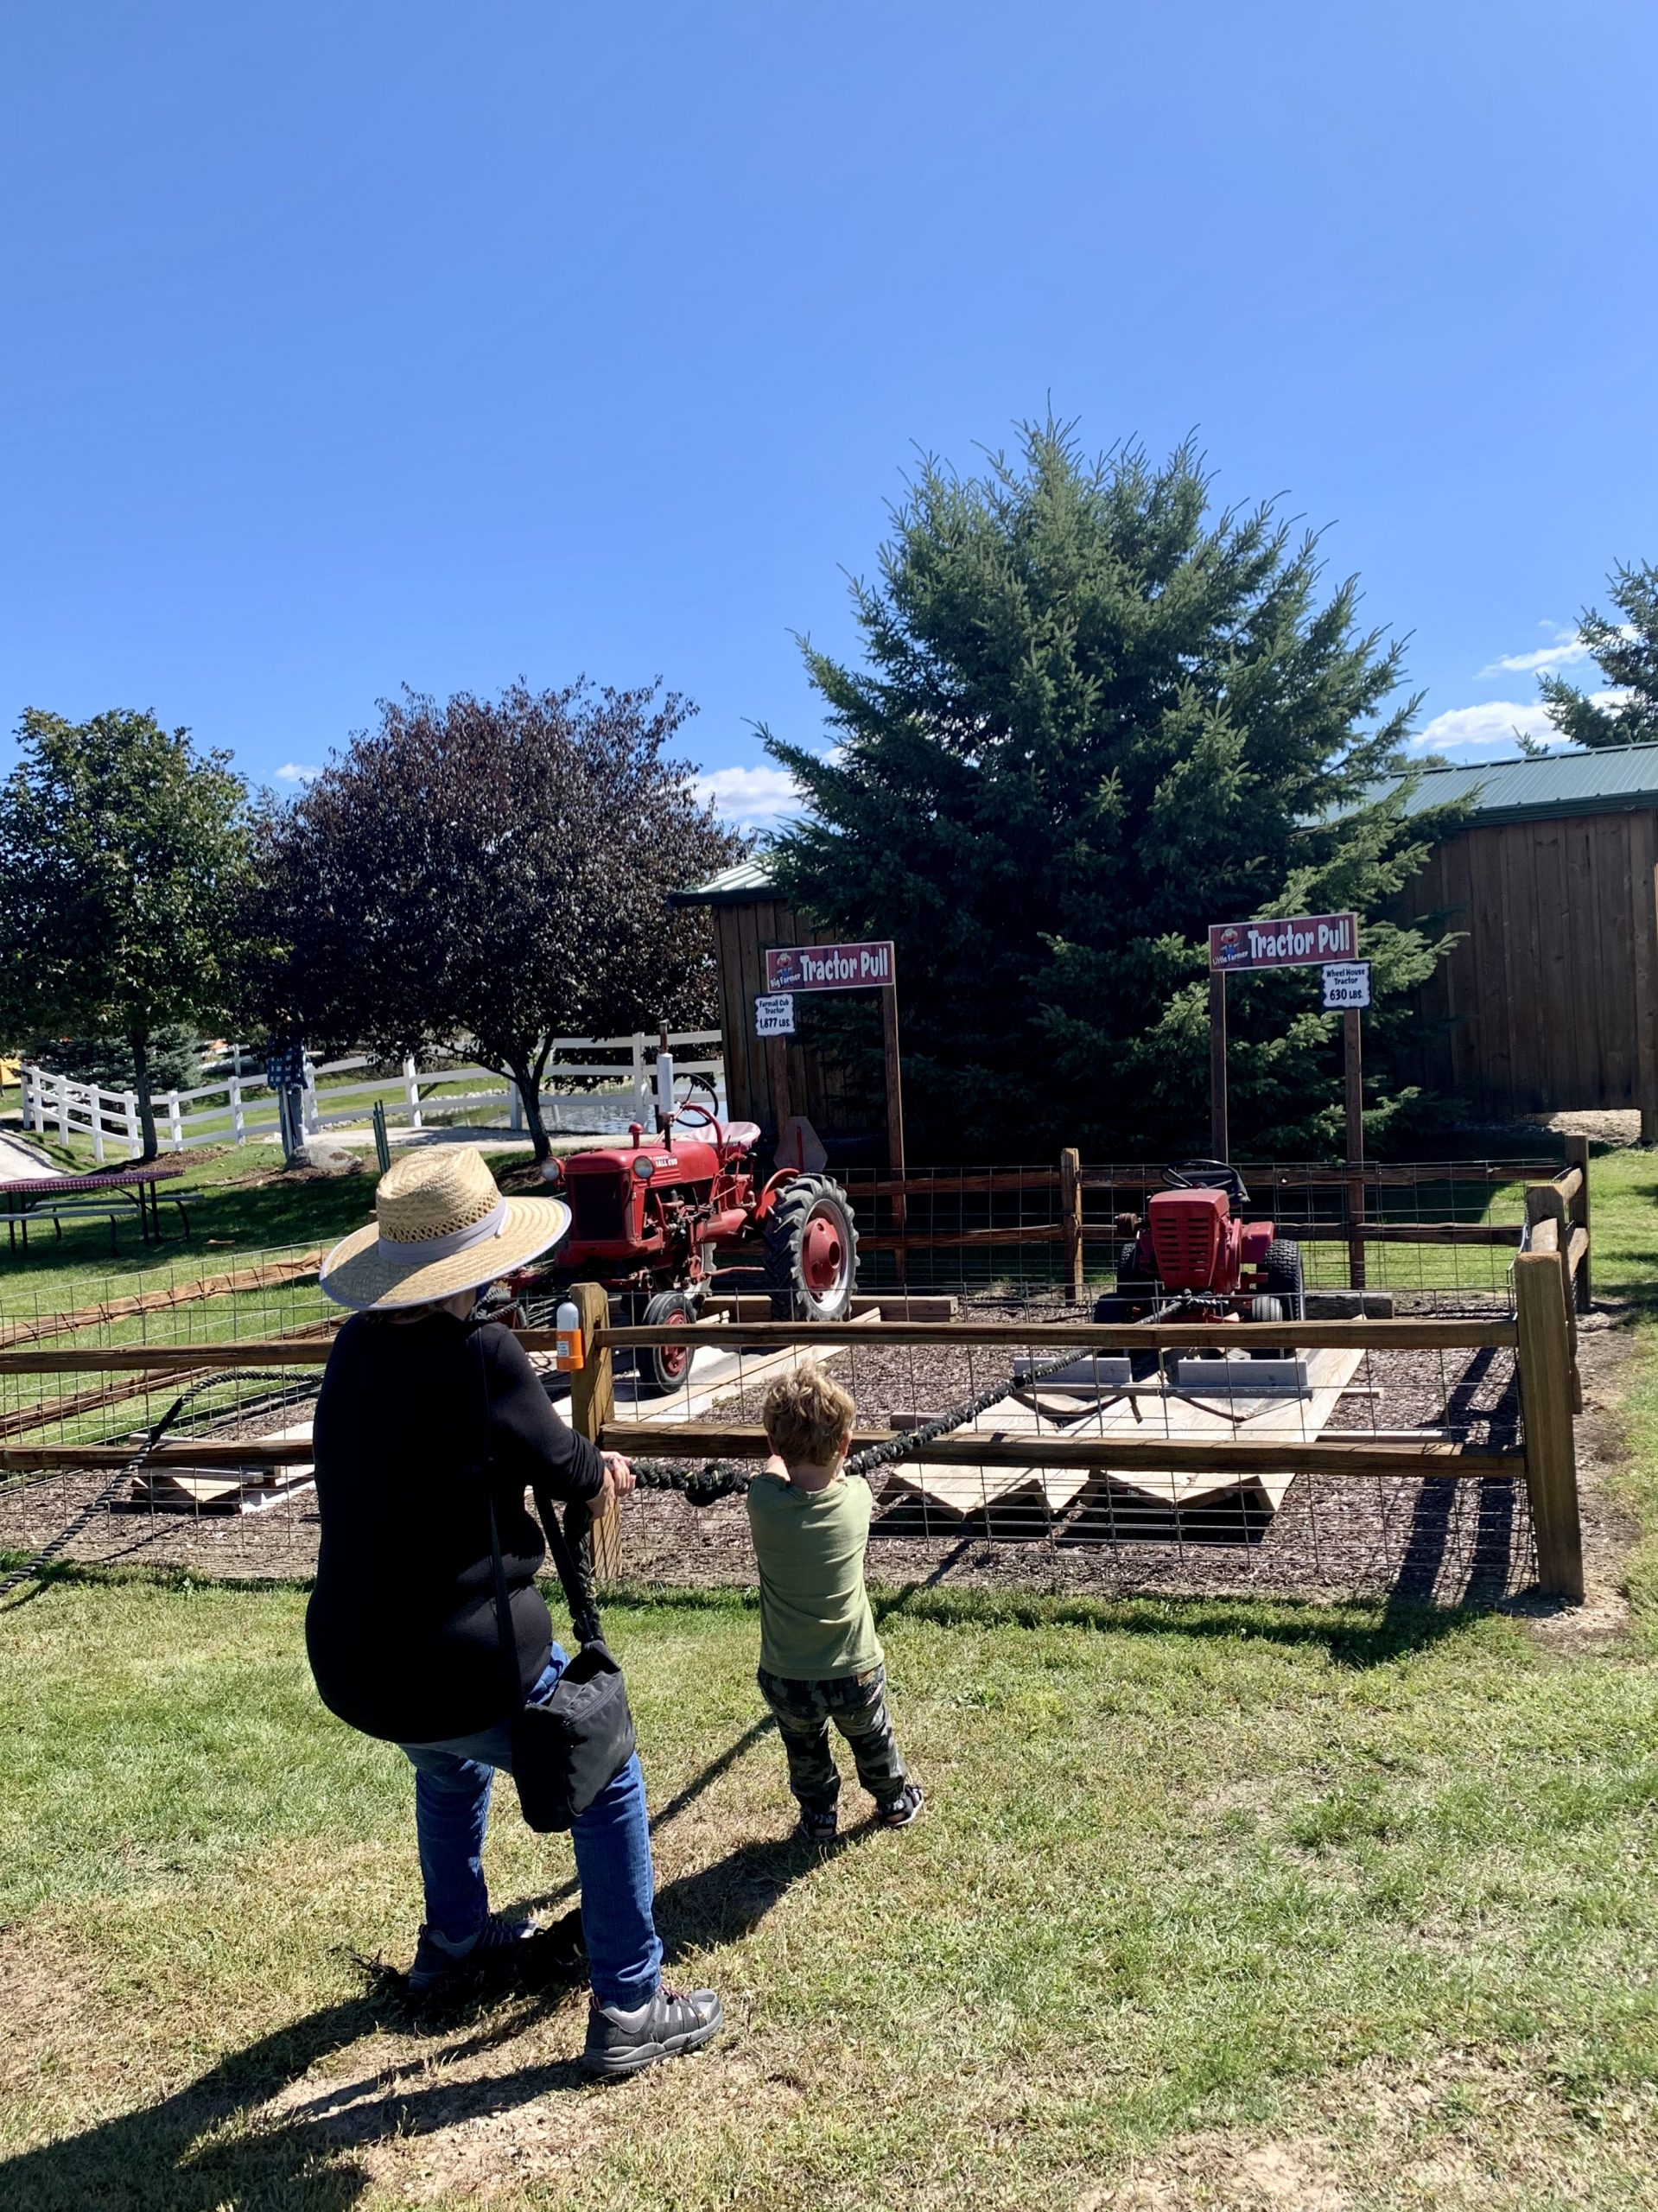 Grandma and Grandson doing the tractor pull at Basse's